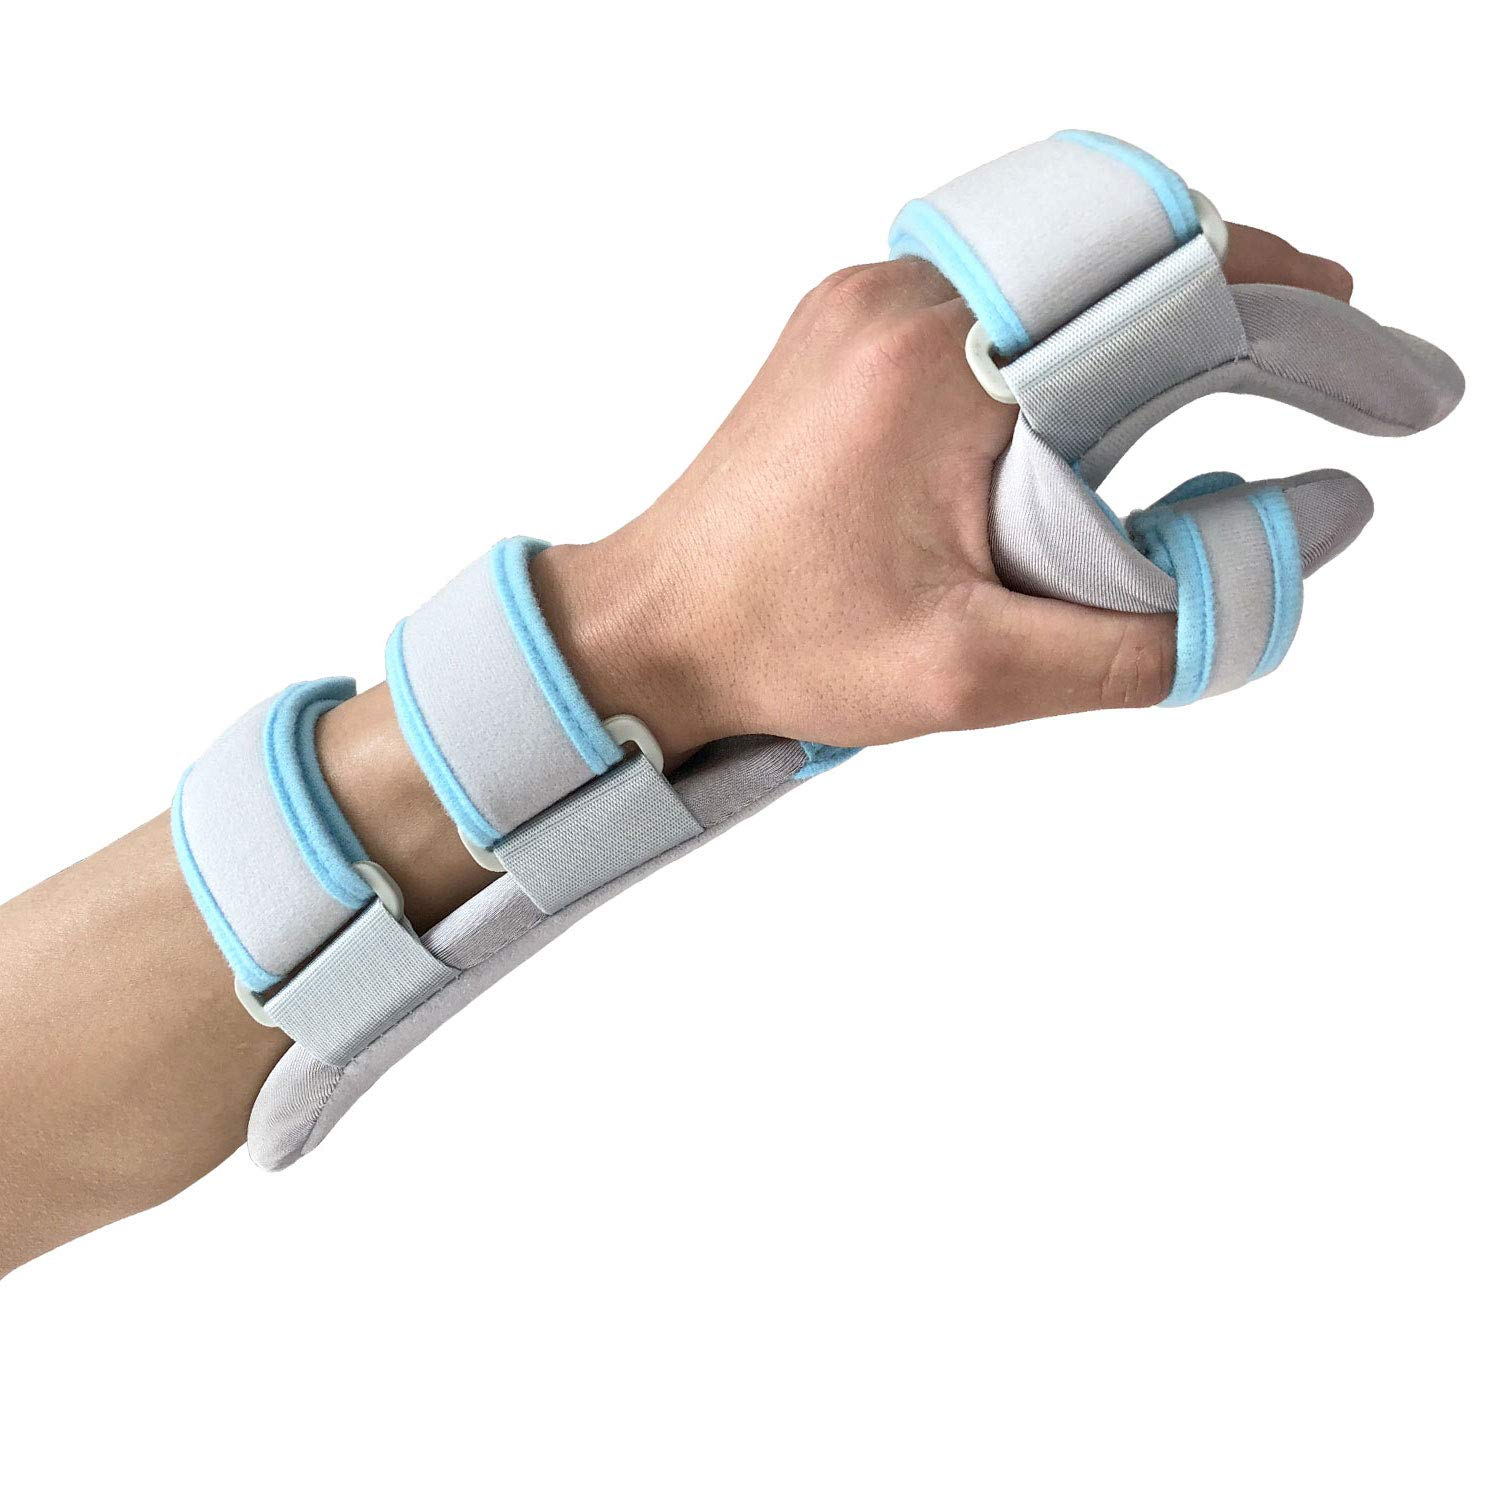 Hand Splint Functional Resting Wrist Support Moderate Stabilizing Brace for Carpal Tunnel, Tendinitis & Inflammation, Hand/Wrist/Thumb Immobilization, Forearm Wrist Splint, Left by Gilife